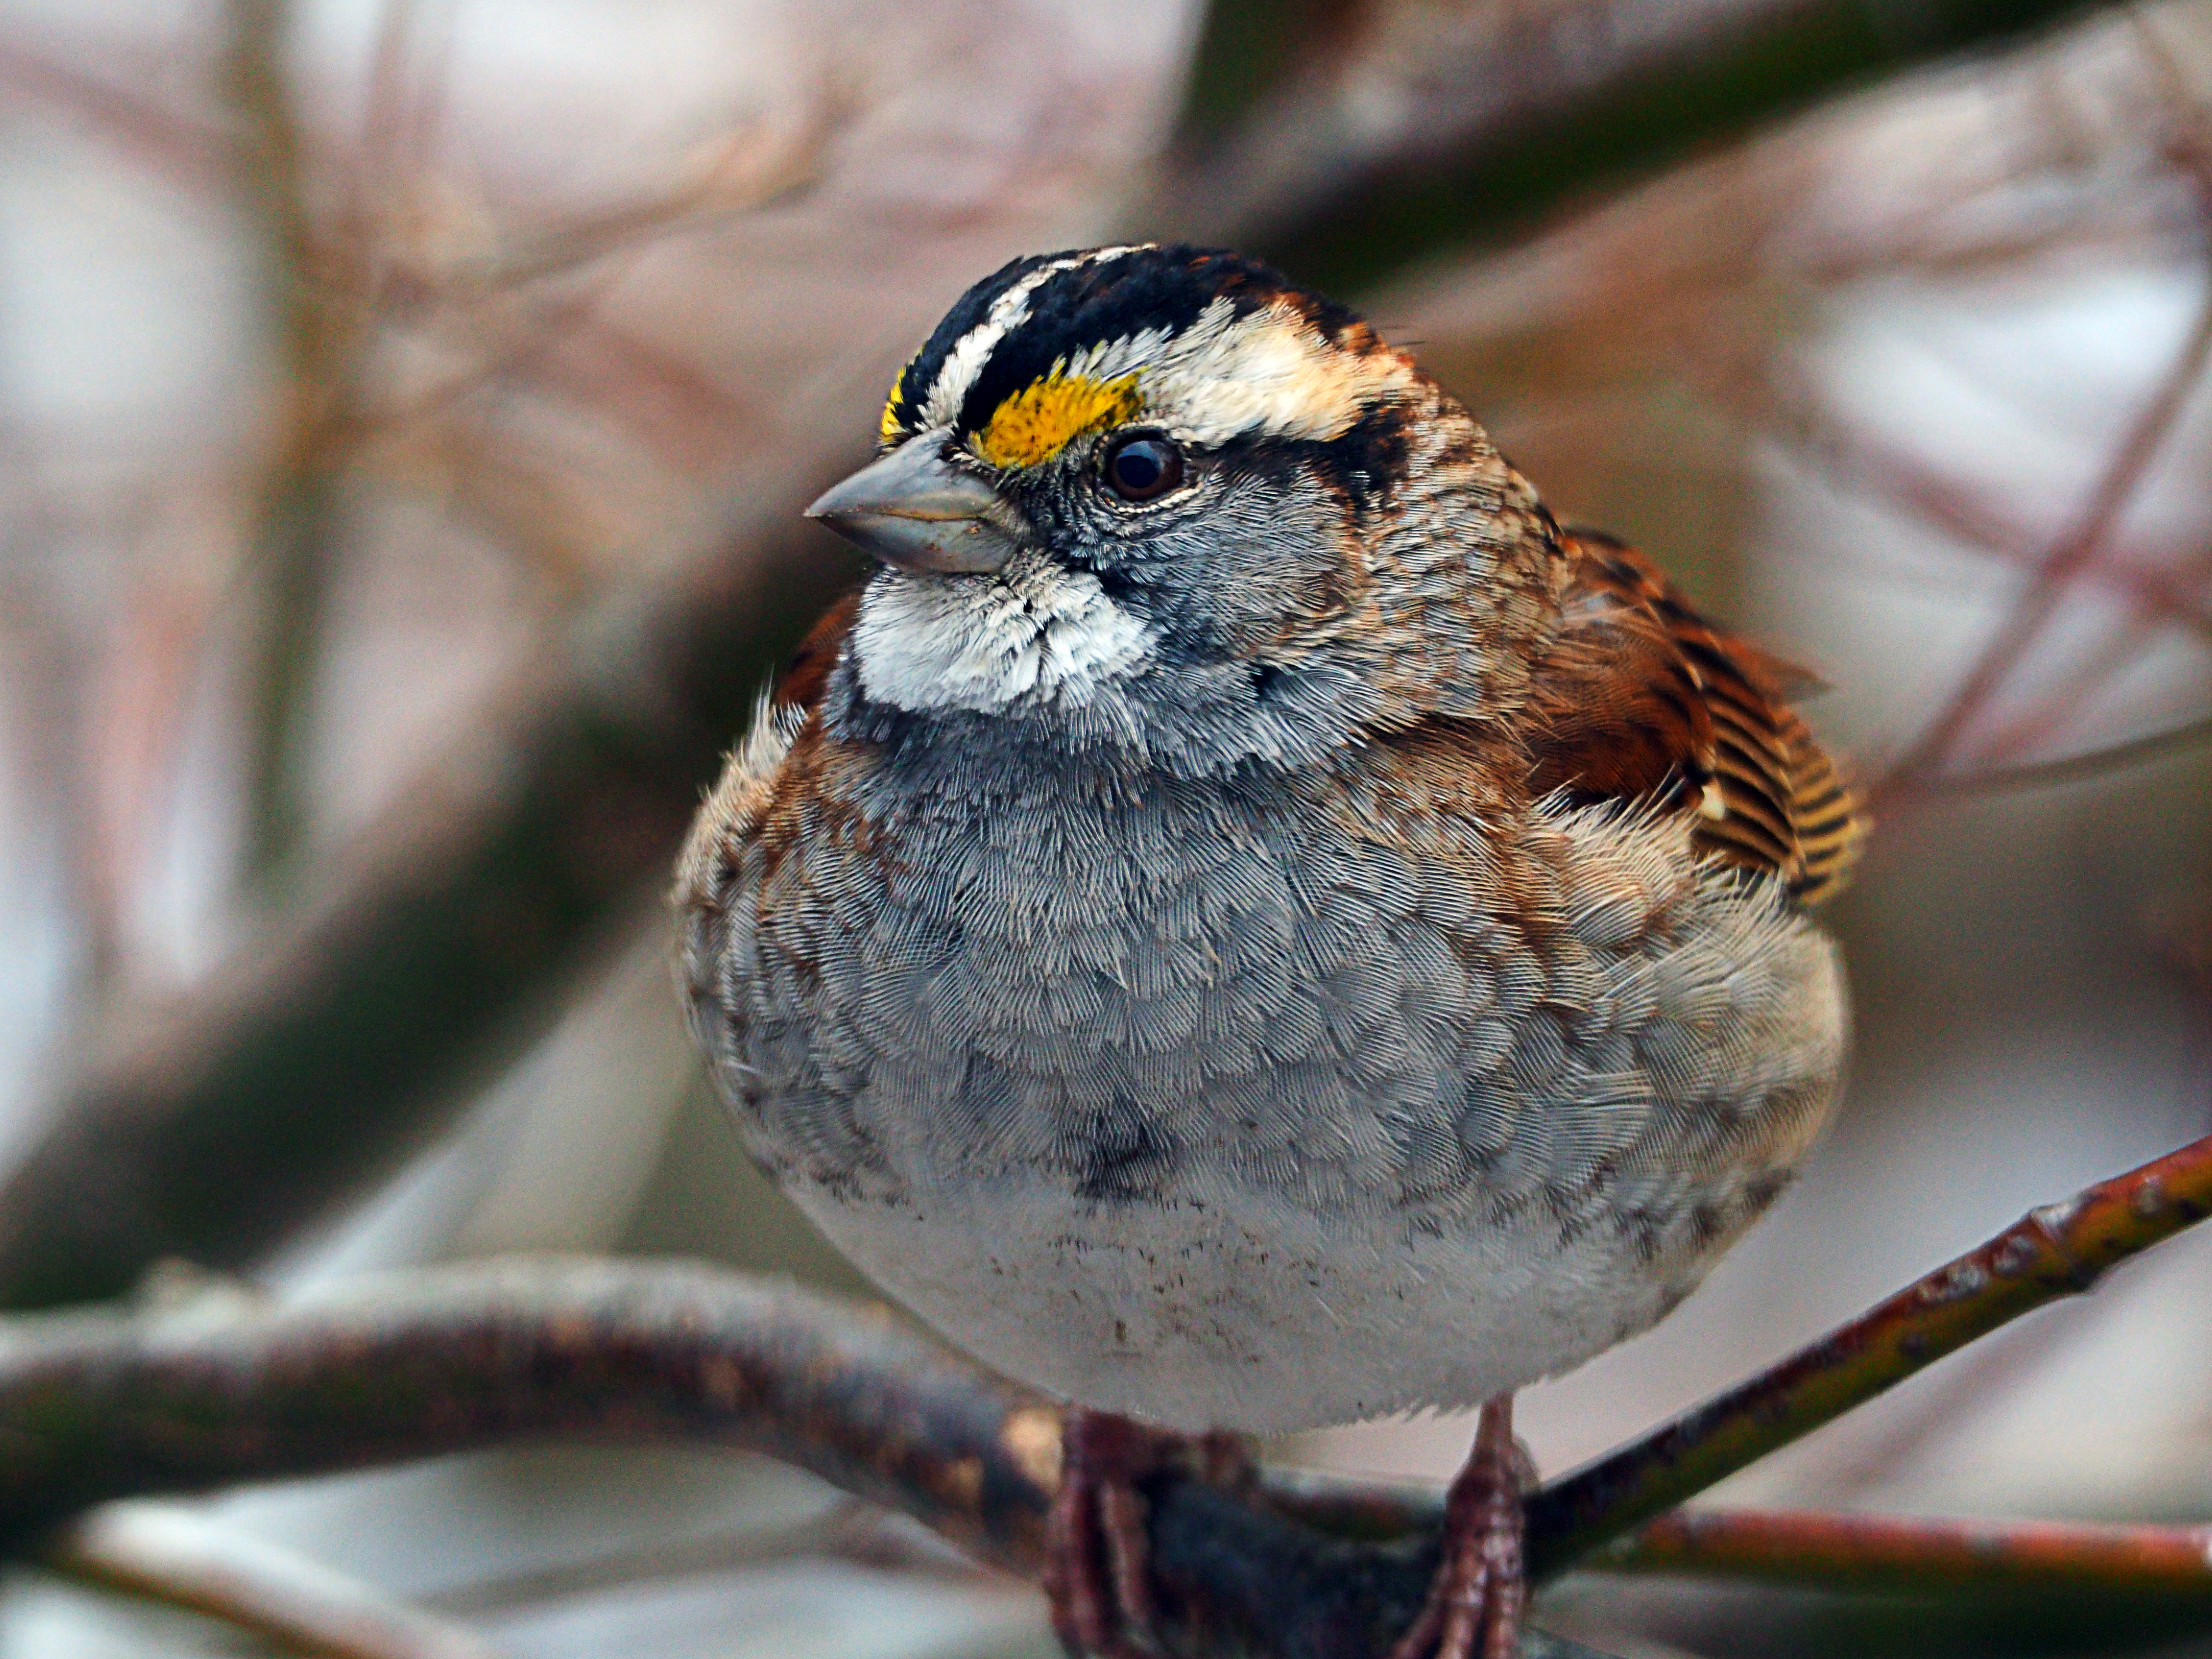 White-throated sparrow.